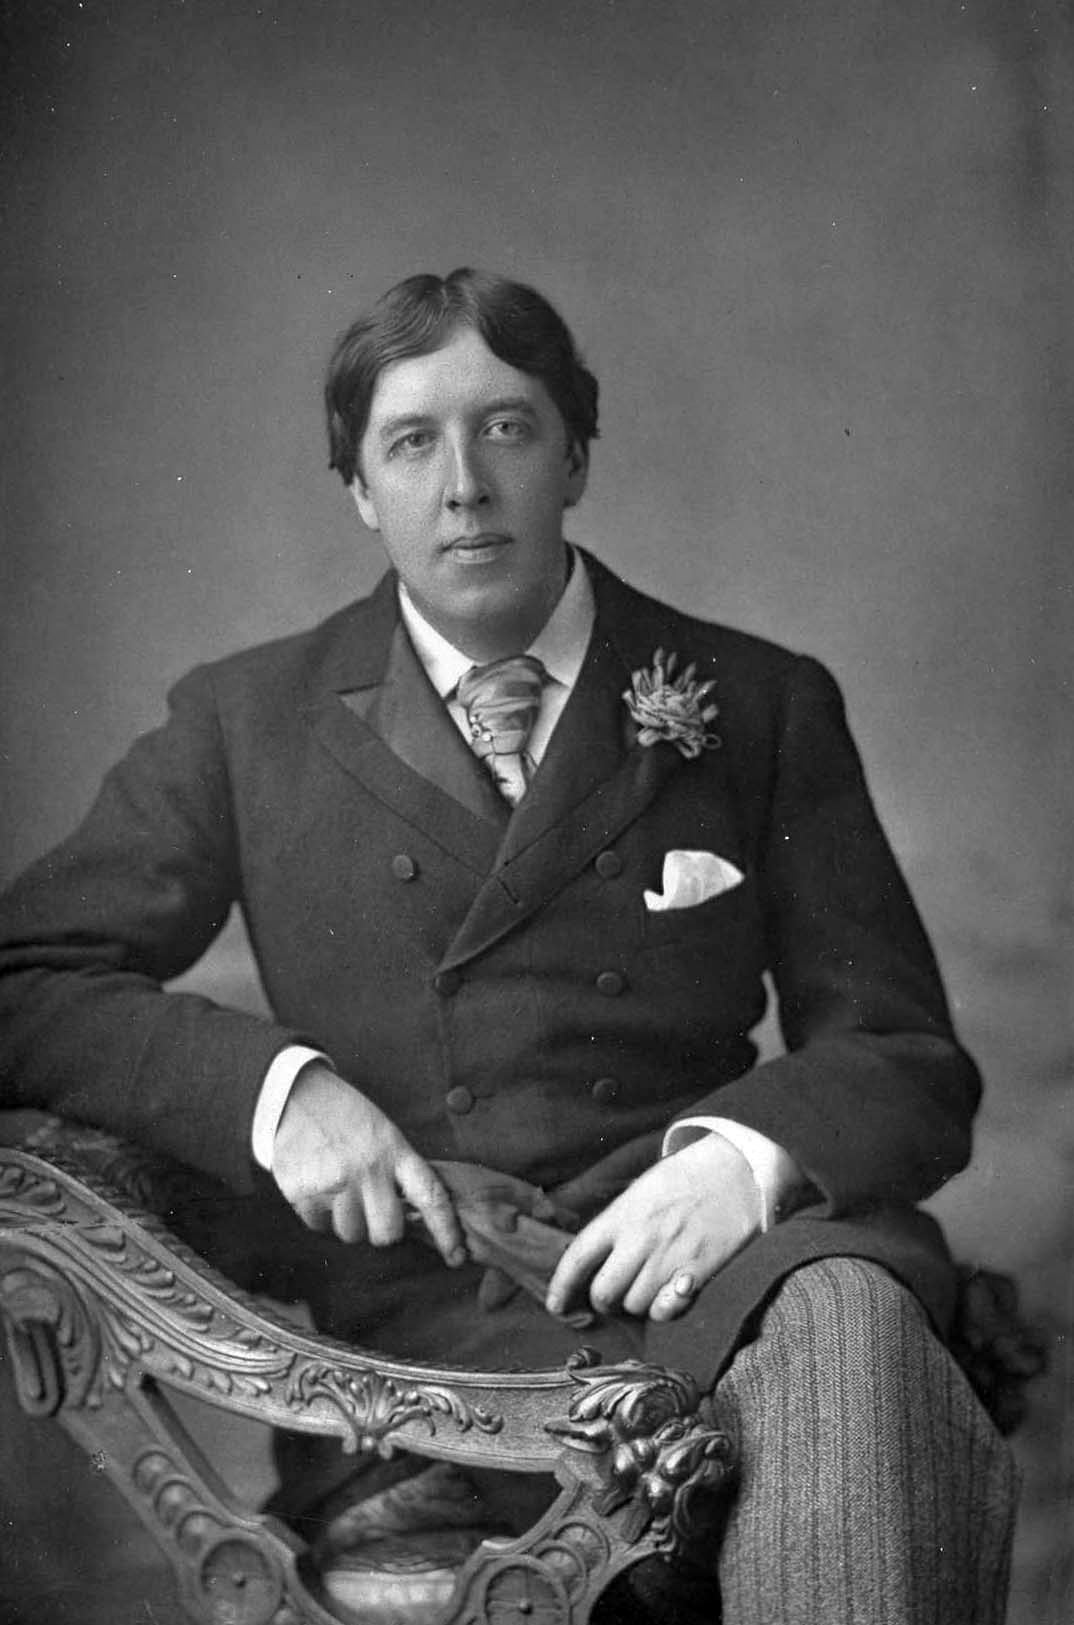 http://upload.wikimedia.org/wikipedia/commons/0/0e/Oscar_Wilde_(1854-1900)_1889,_May_23._Picture_by_W._and_D._Downey.jpg